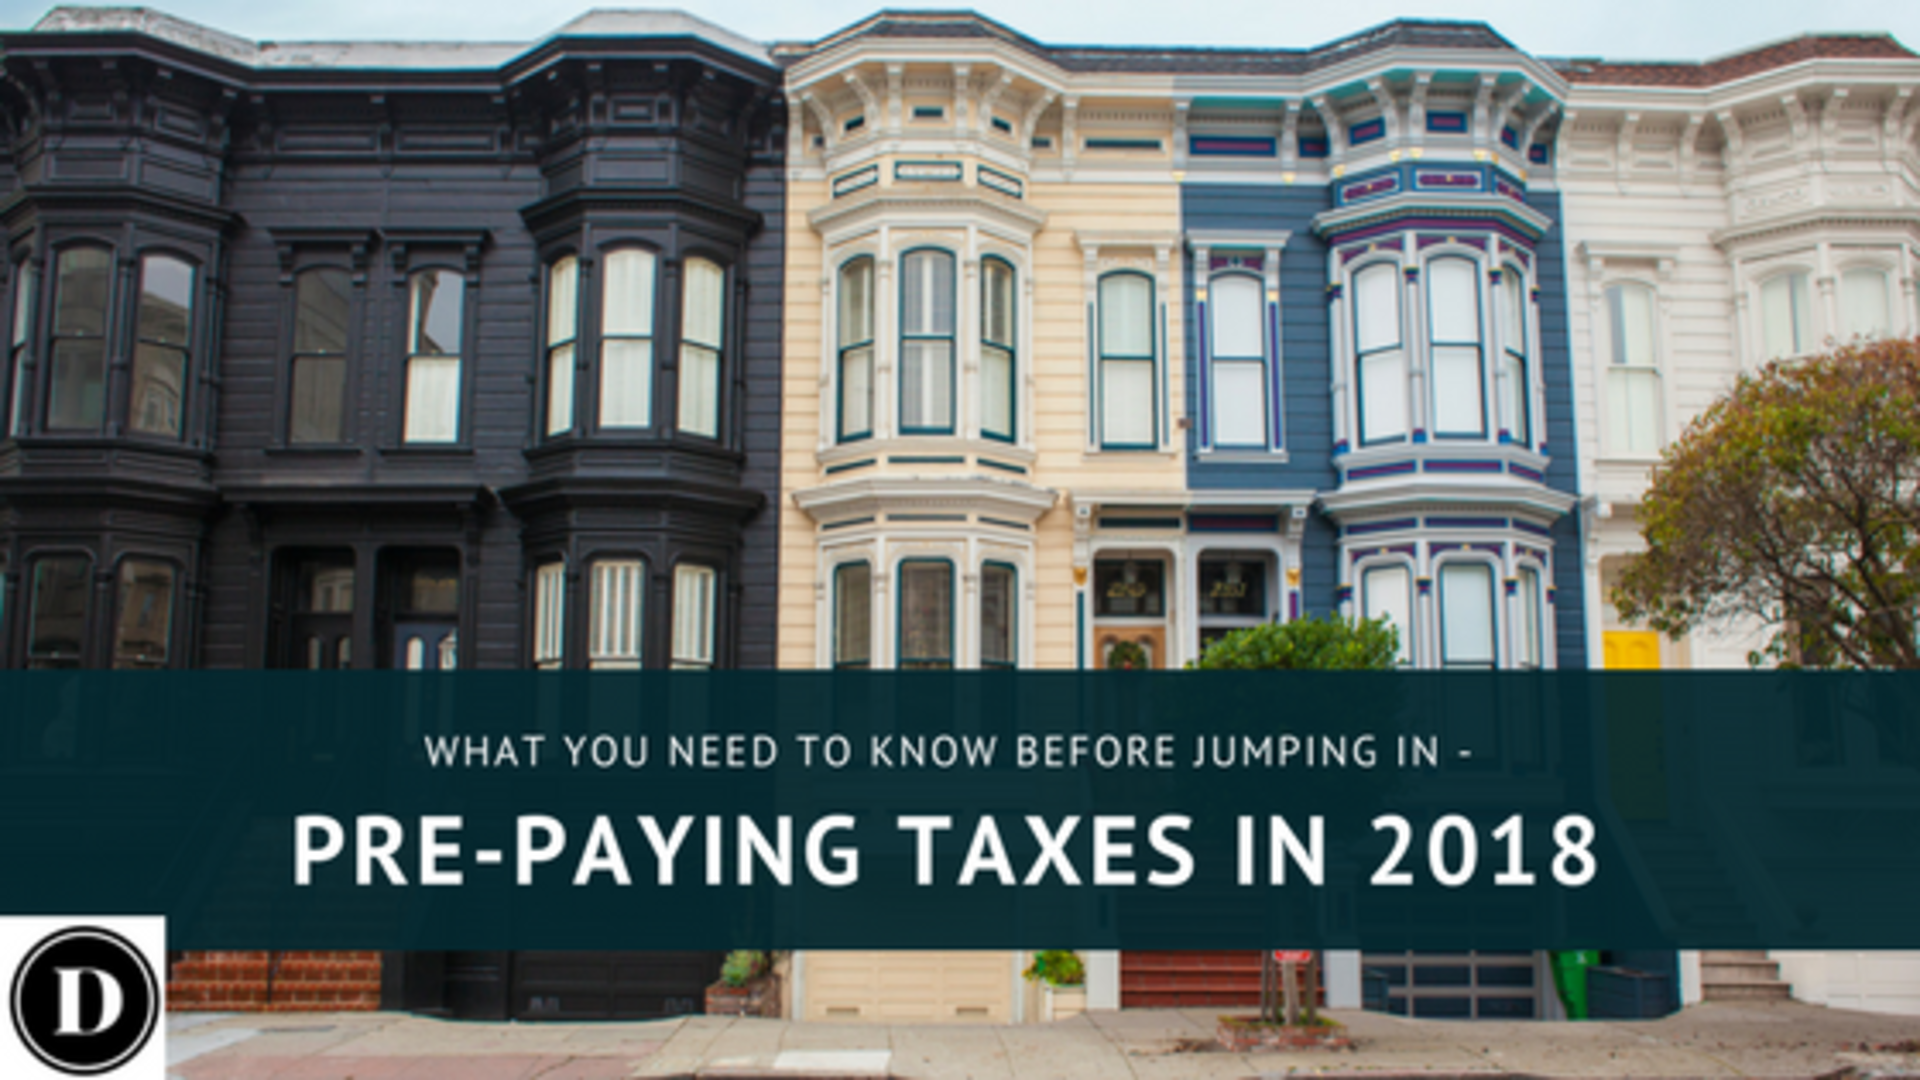 Pre-paying 2018 Property Taxes